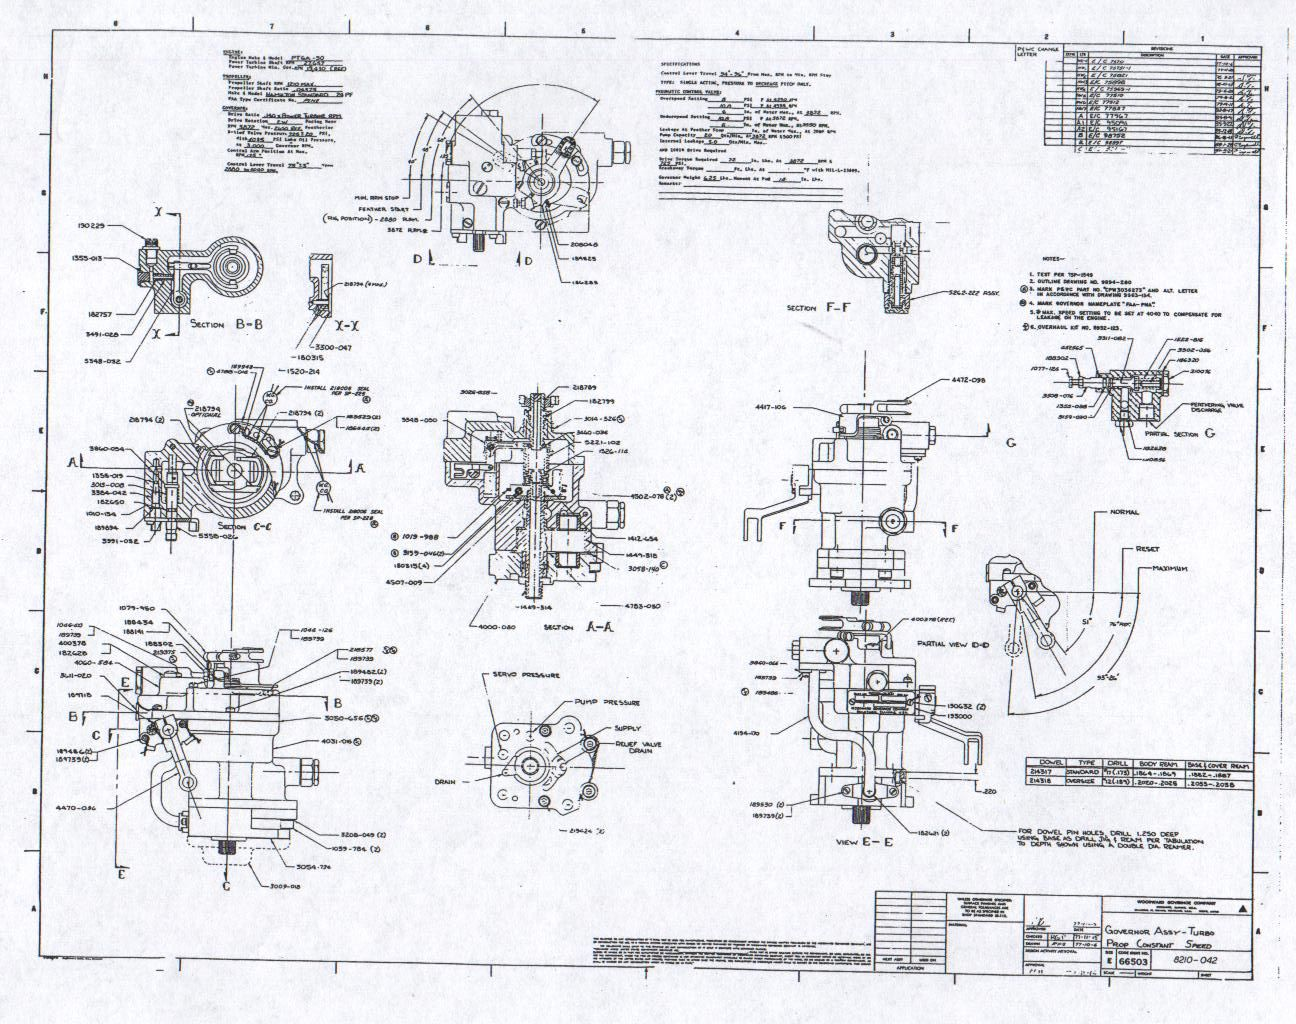 small resolution of woodward aircraft propeller governor schematic drawing woodward governor aircraft propeller operations management